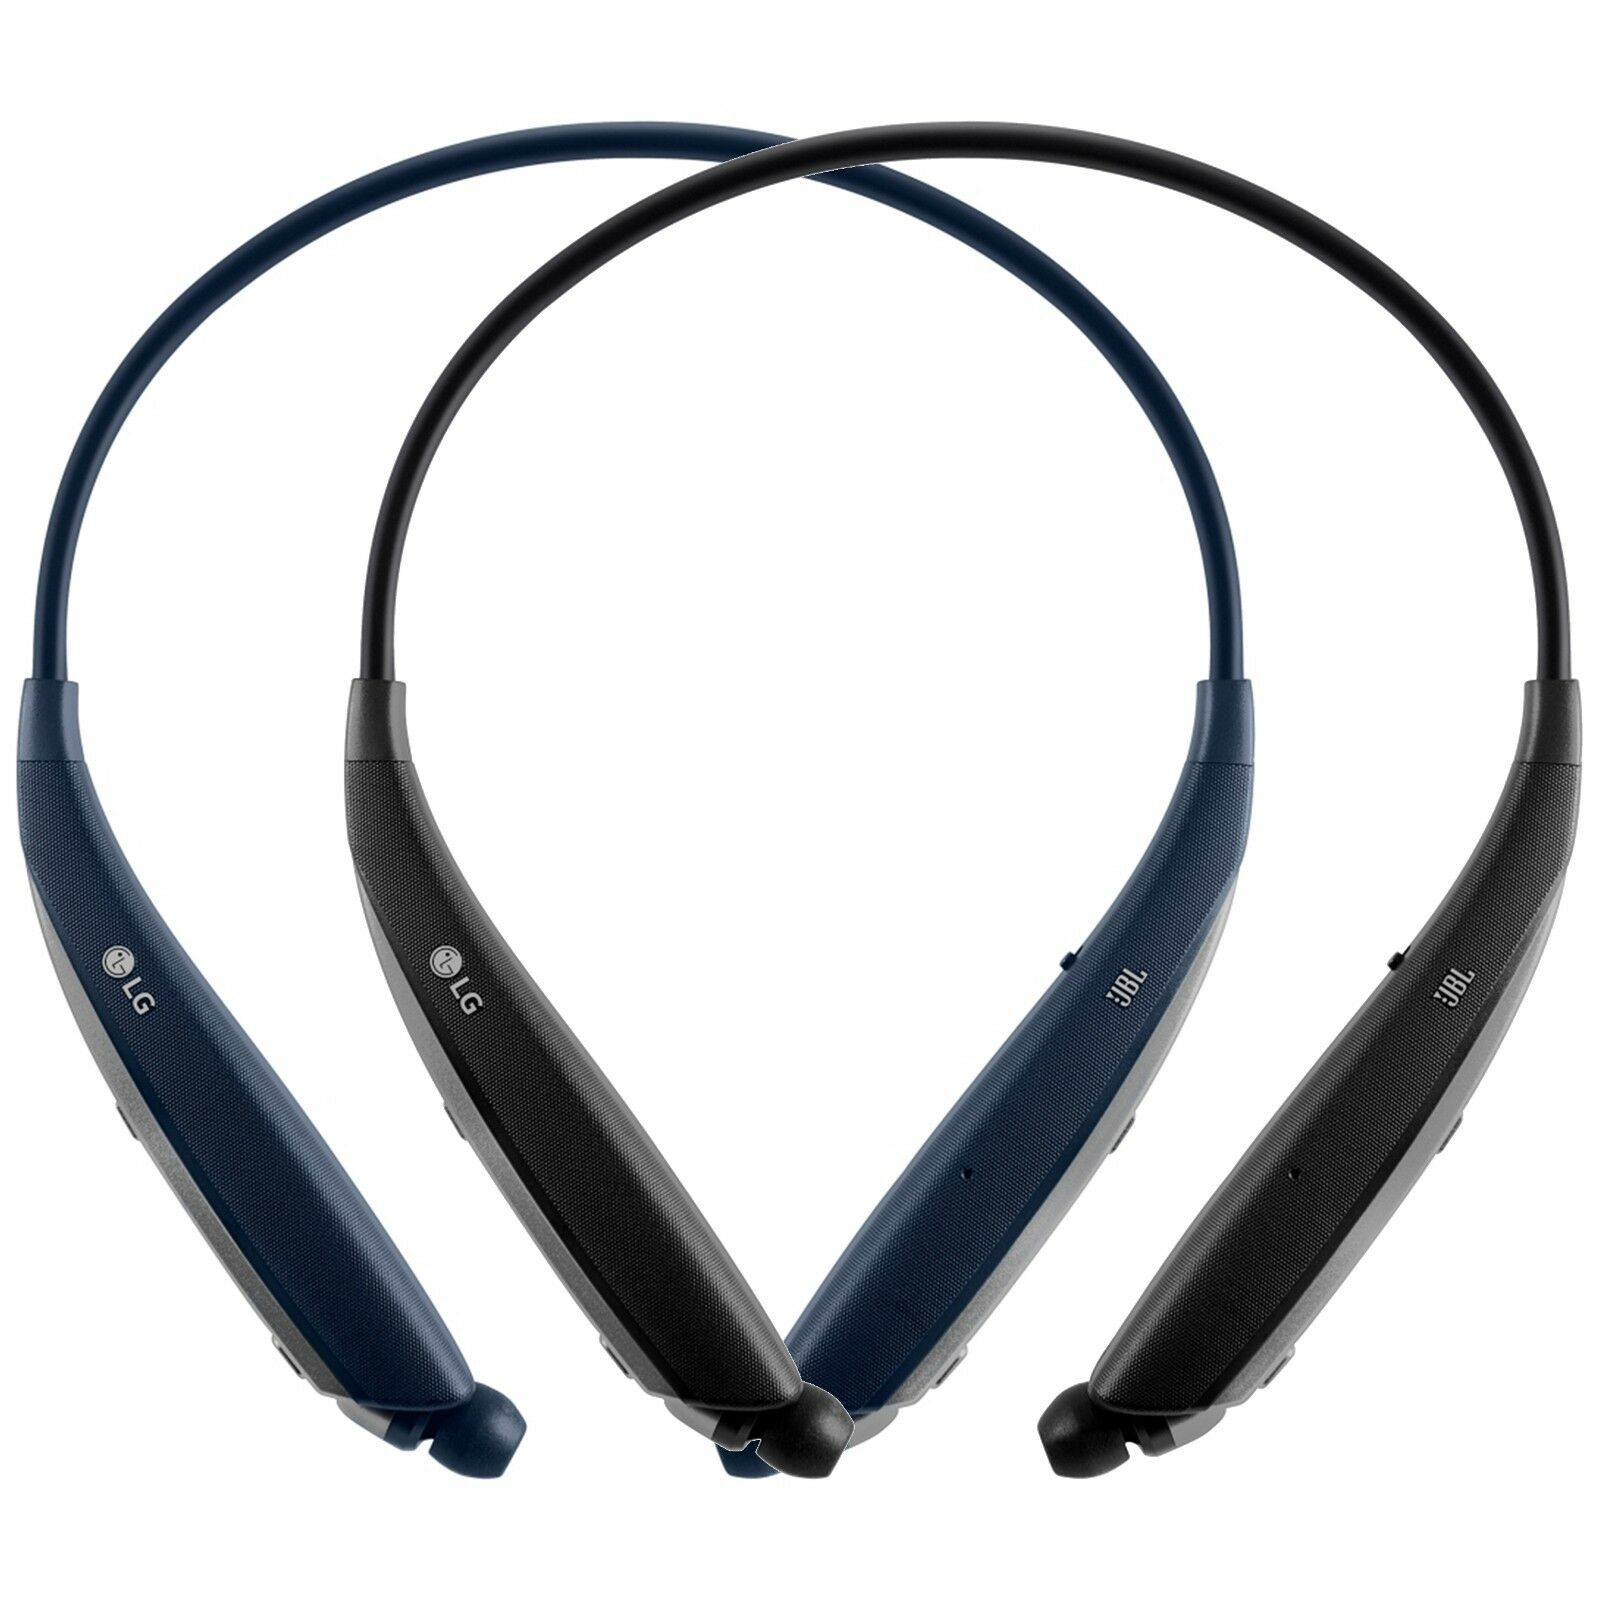 lg-tone-ultra-hbs-820-wireless-in-ear-behind-the-neck-headset-headphones